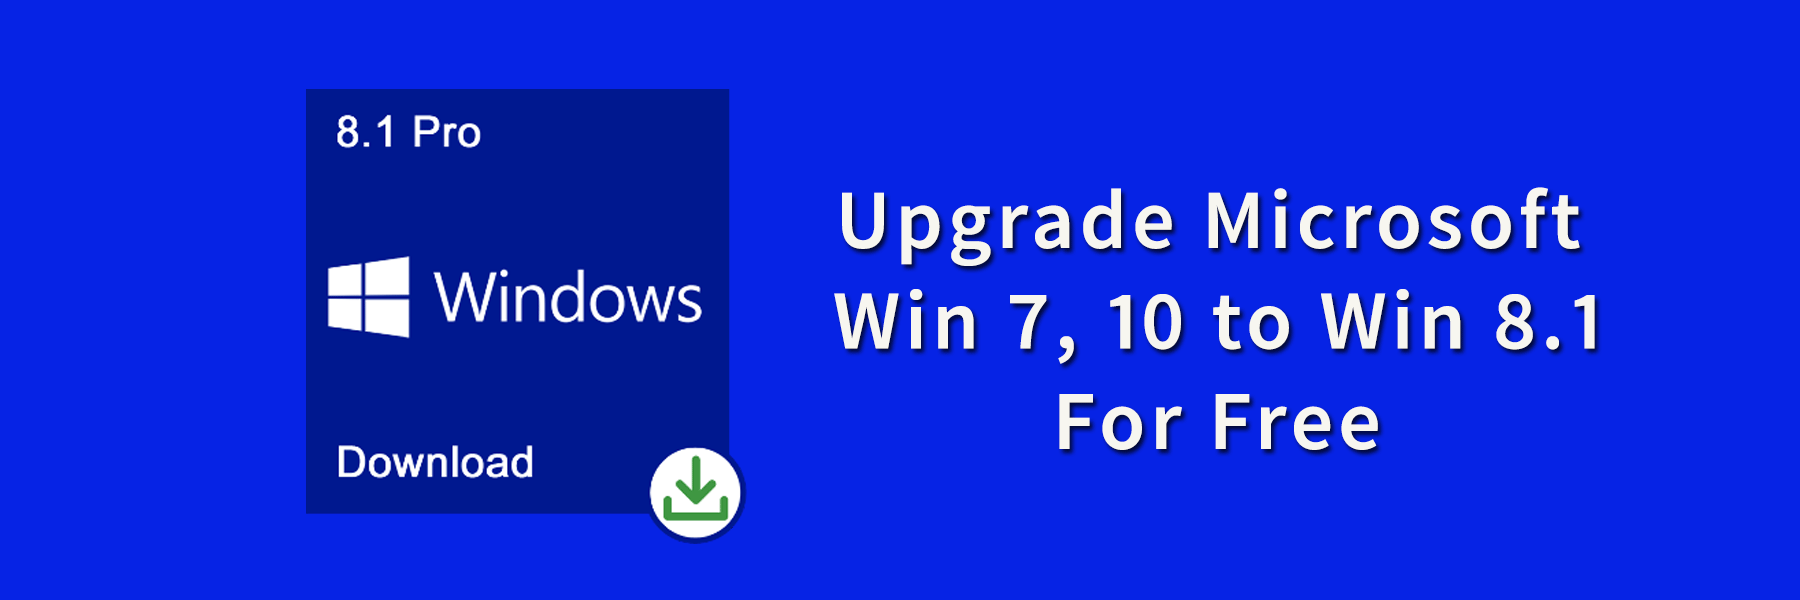 Upgrade Microsoft Windows 7, 10 to Windows 8.1 For Free